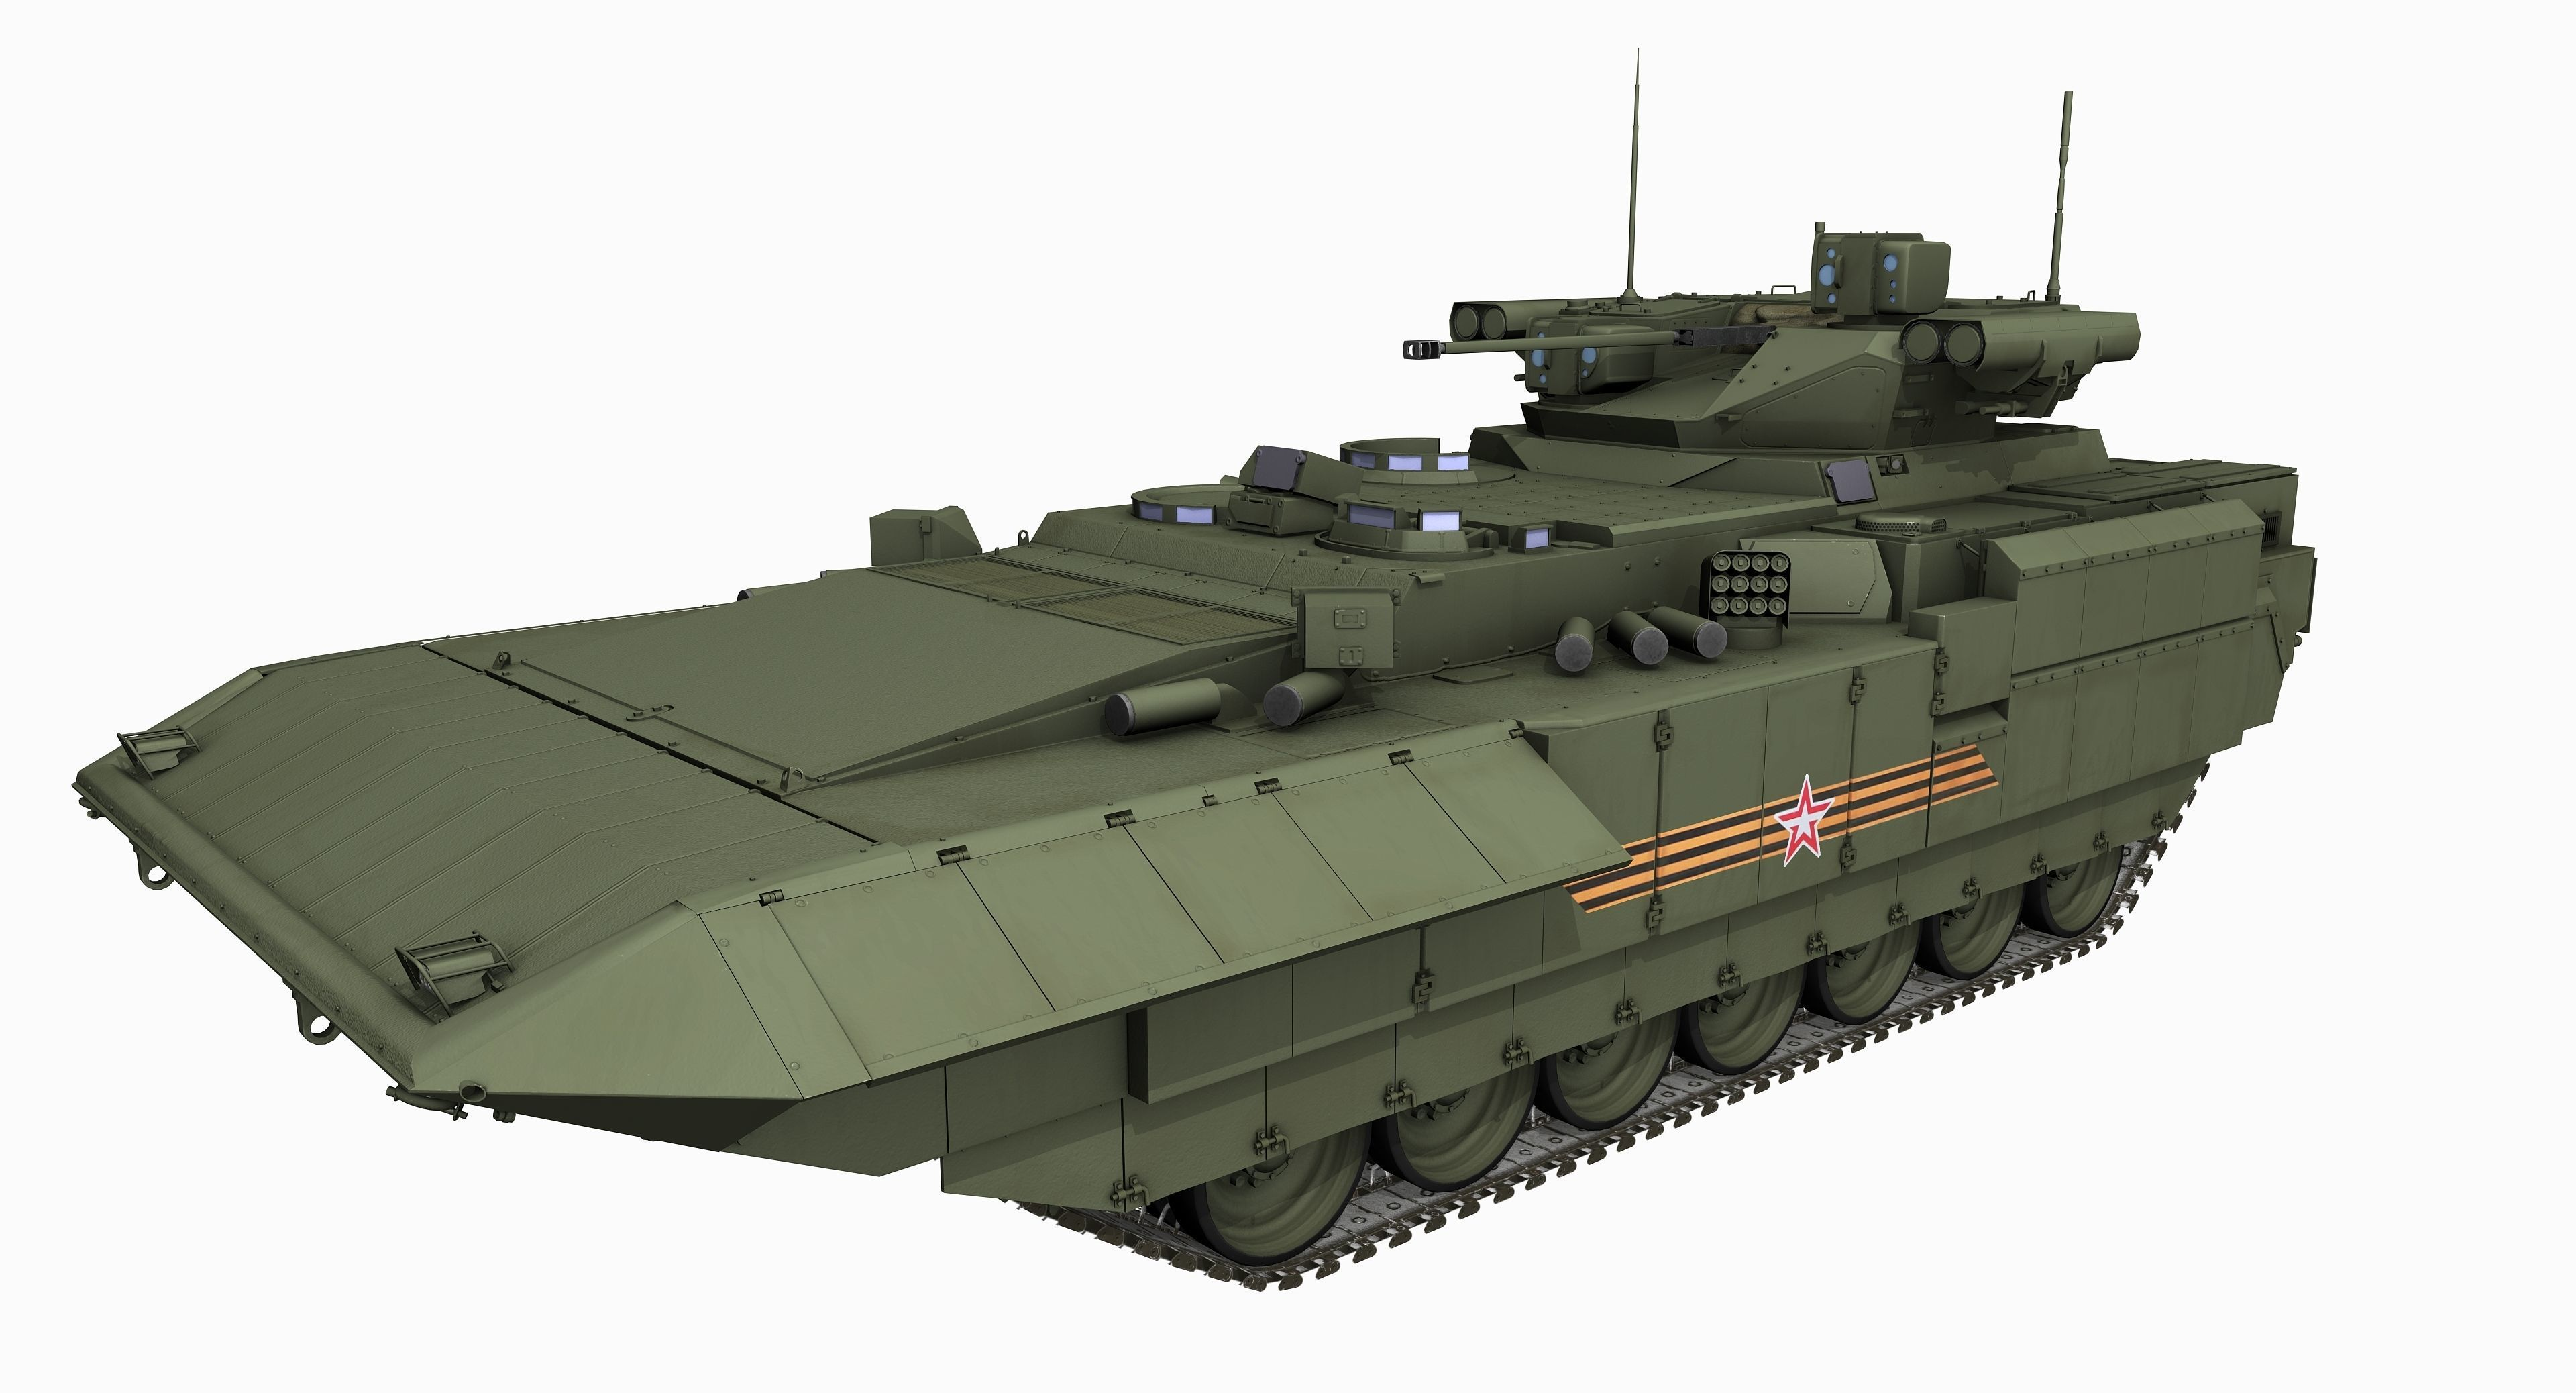 T-15 Armata Russian Heavy APC Game PBR Model